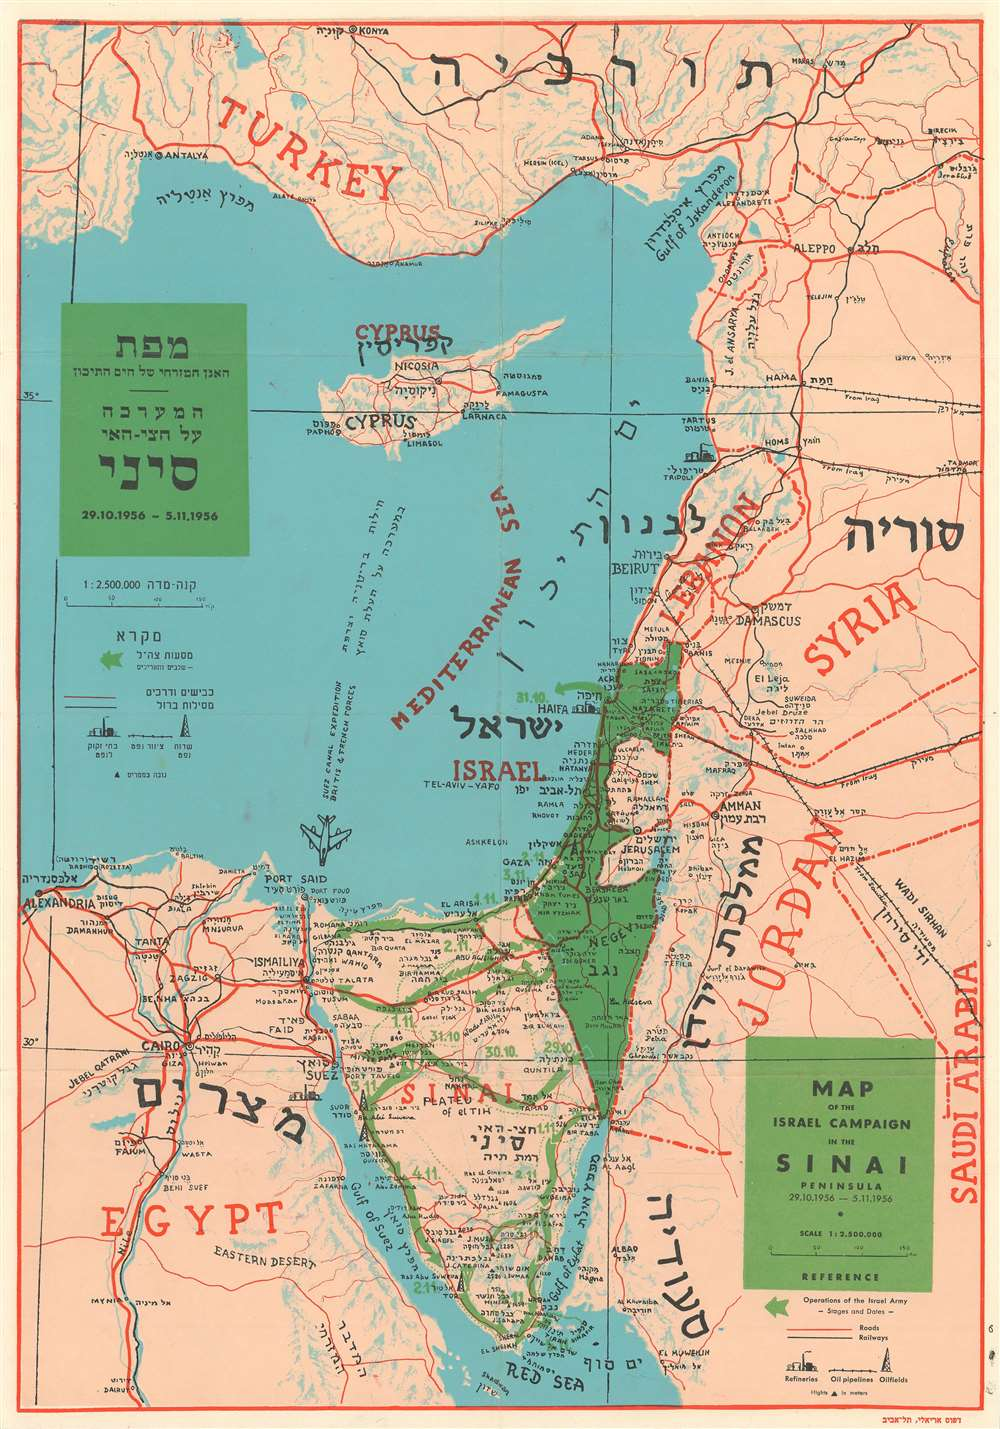 Map of the Israel Campaign in the Sinai Peninsula ...